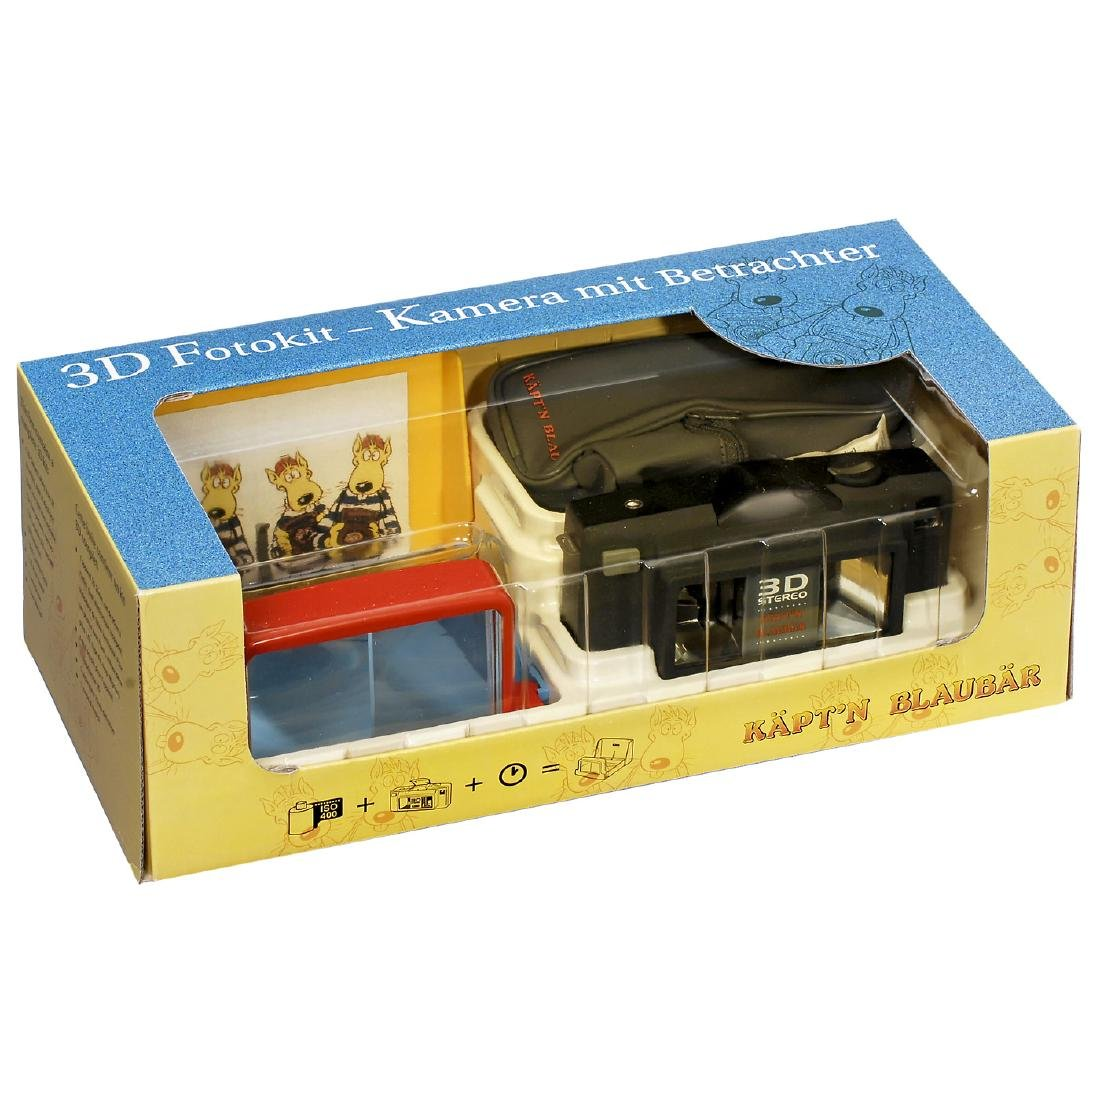 Loreo 3D Camera with Accessories, 1990